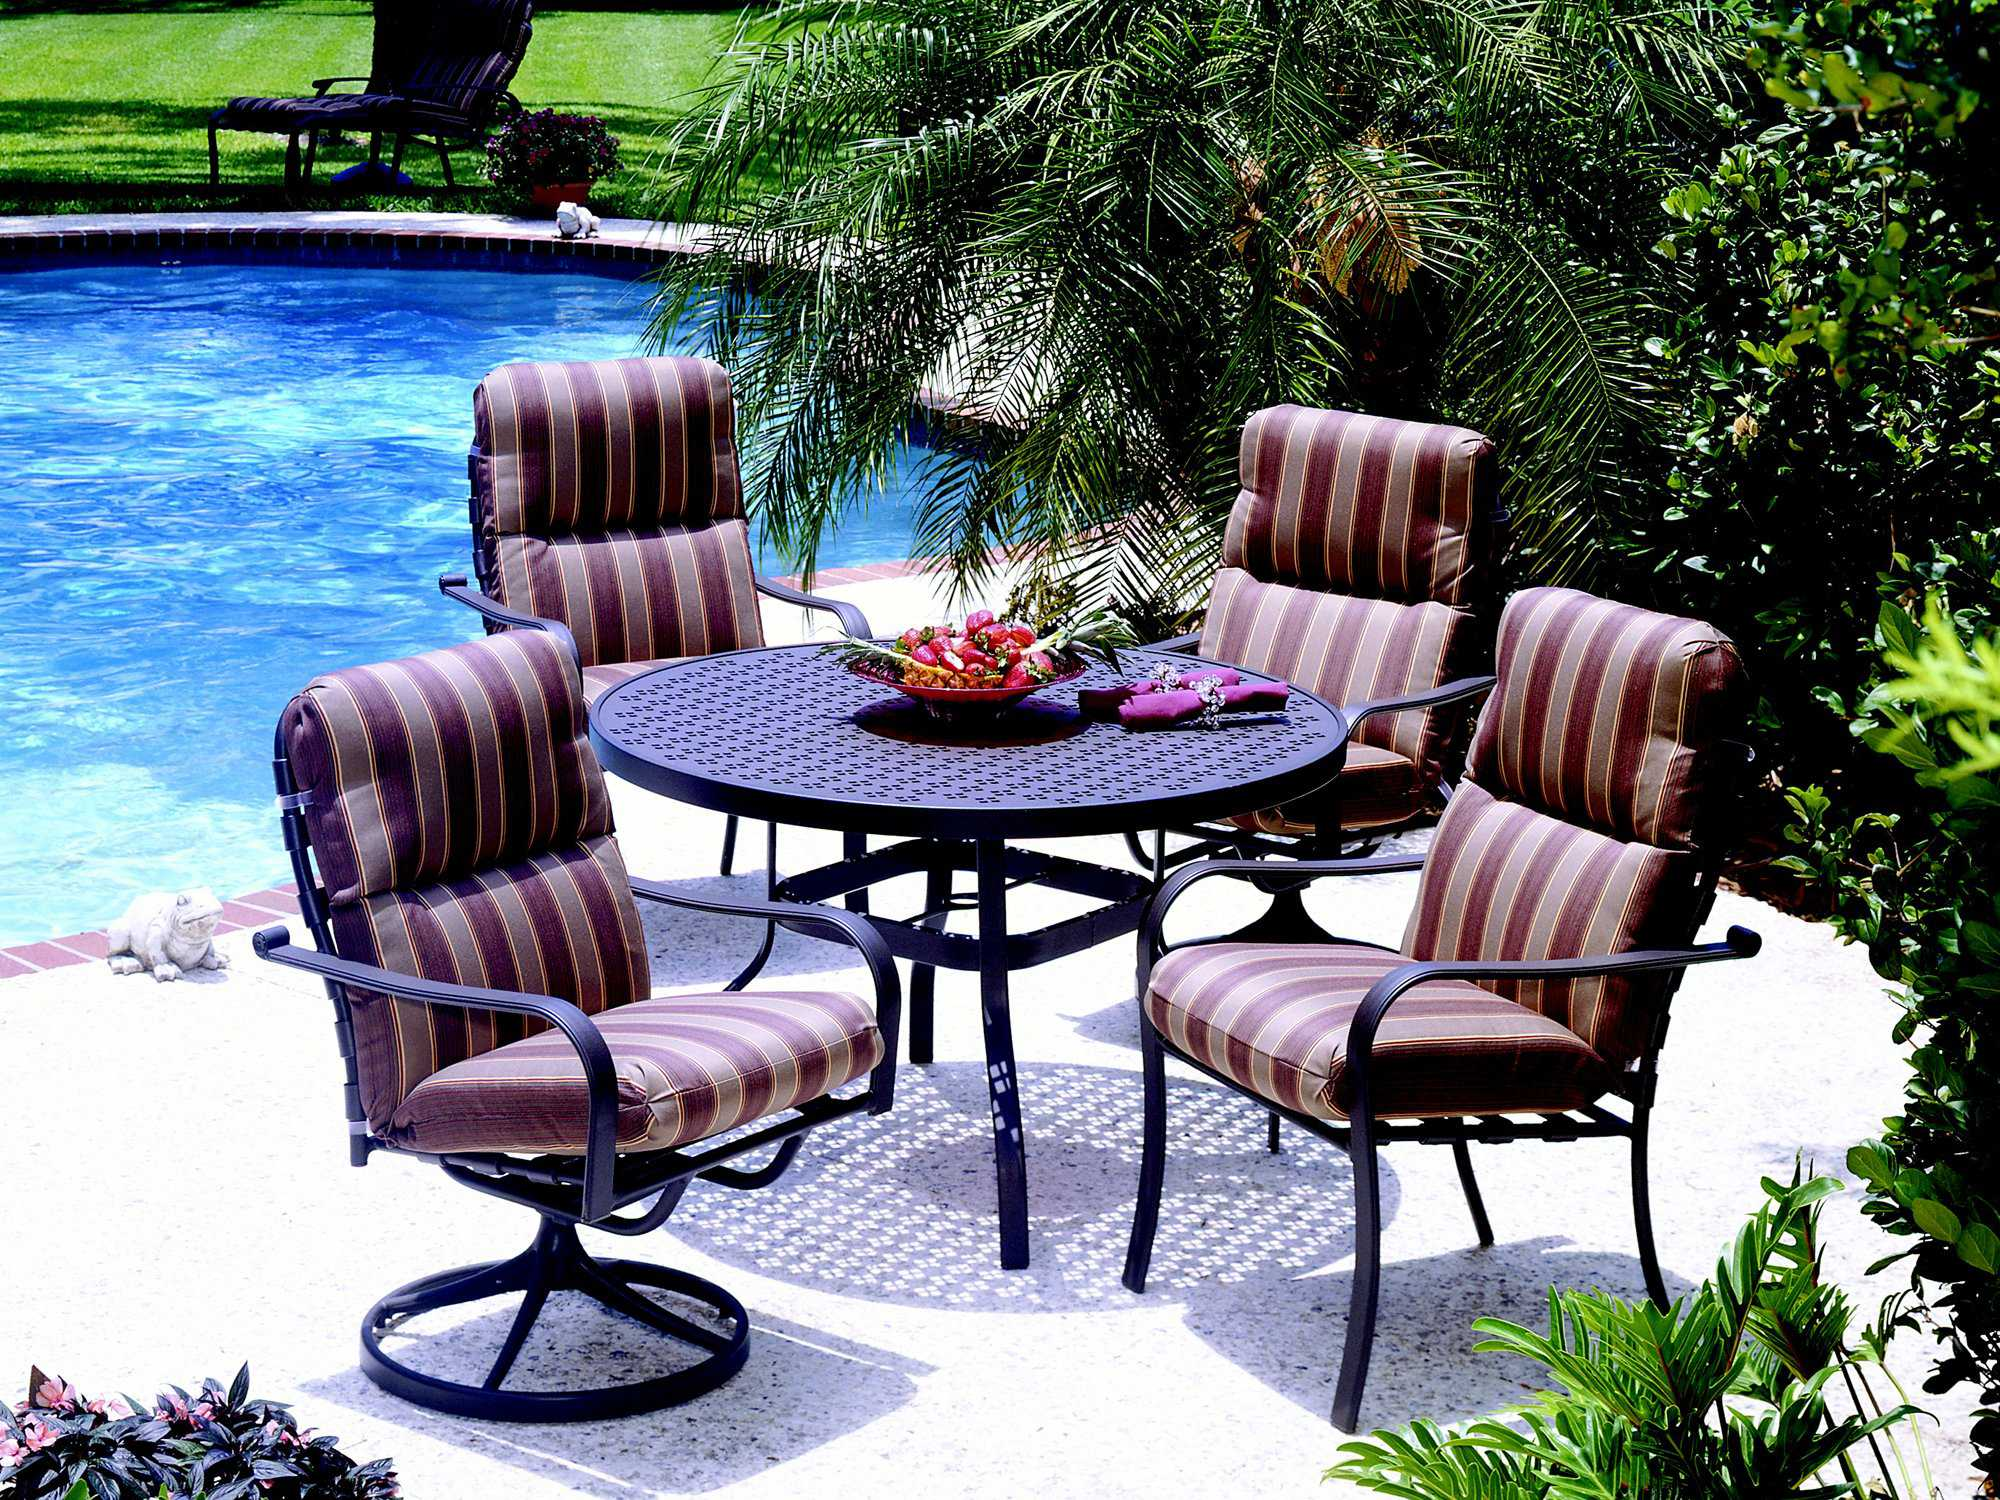 Suncoast Patterned Square Aluminum 48 39 39 Round Metal Dining Table With Umbrella Hole 48pa